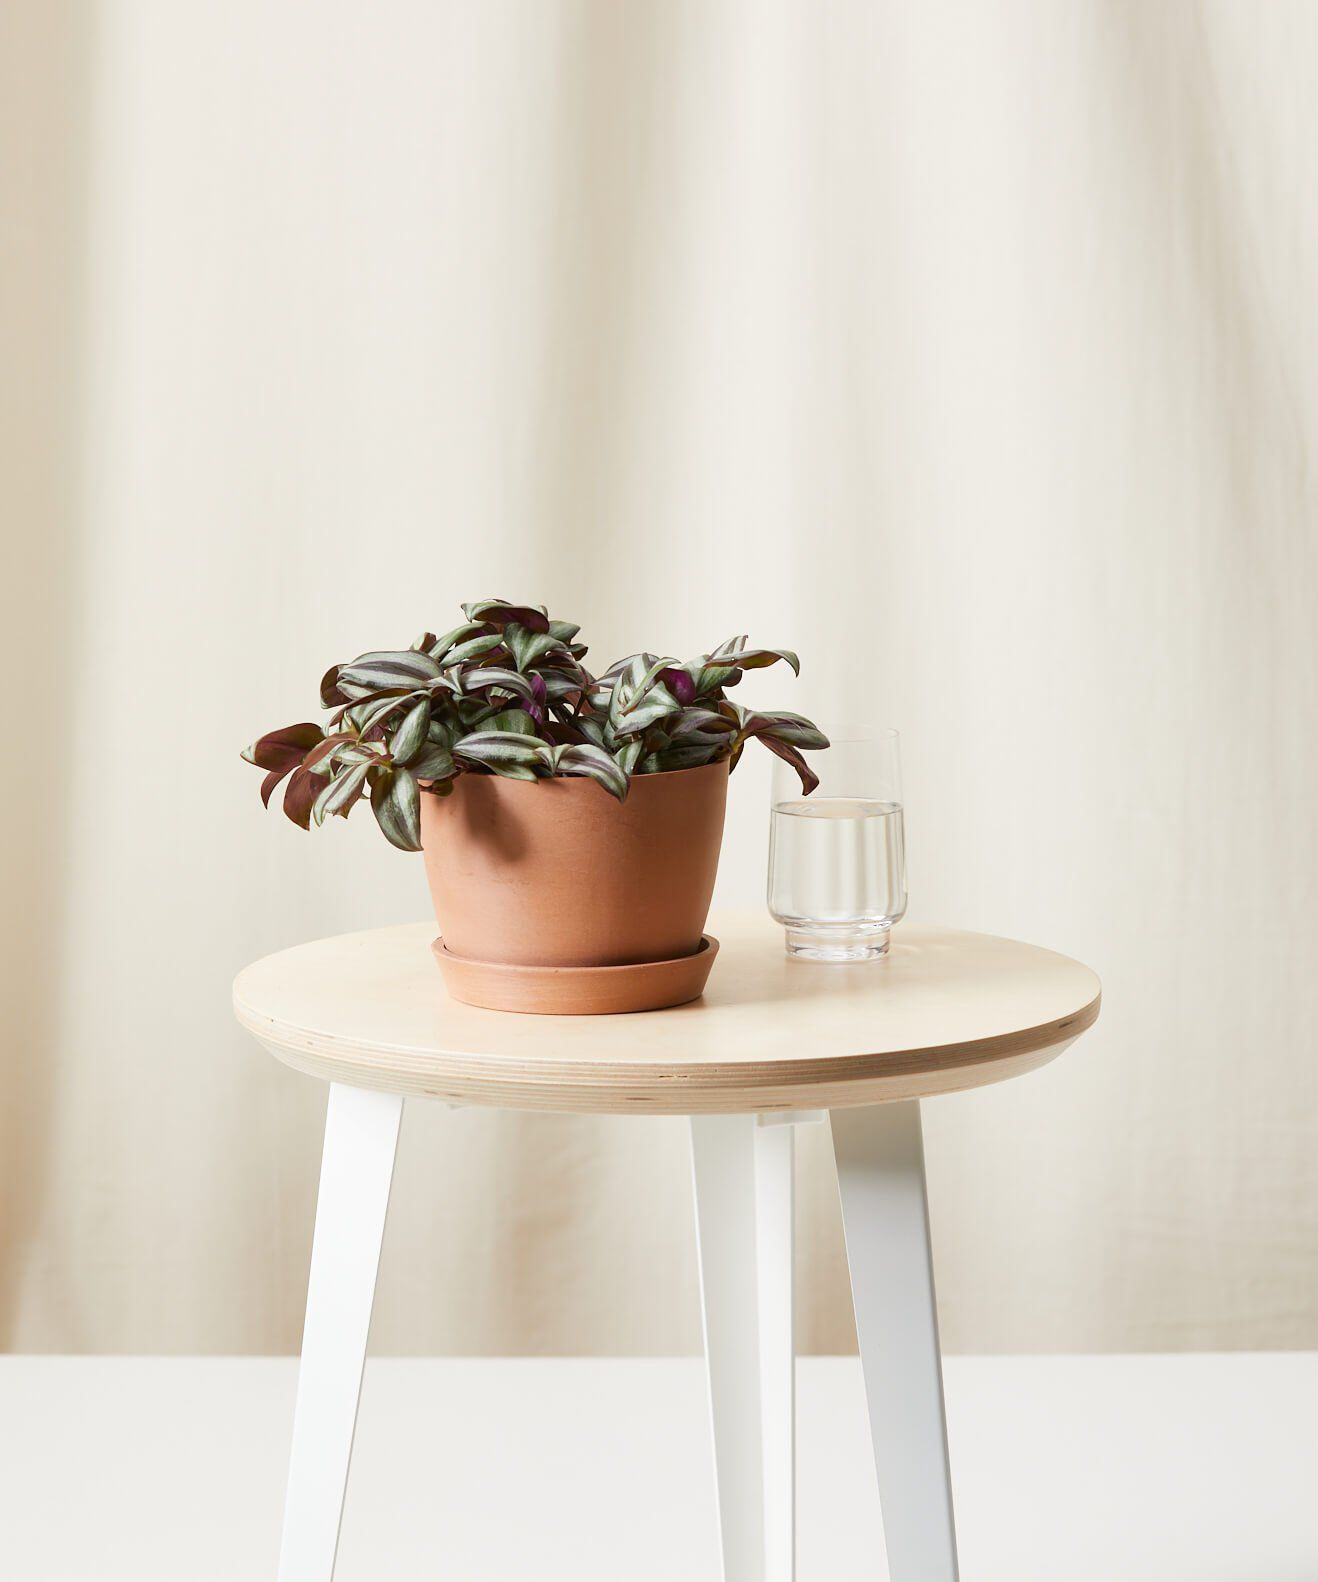 Wandering Jew plant in an orange clay pot on a wood side table